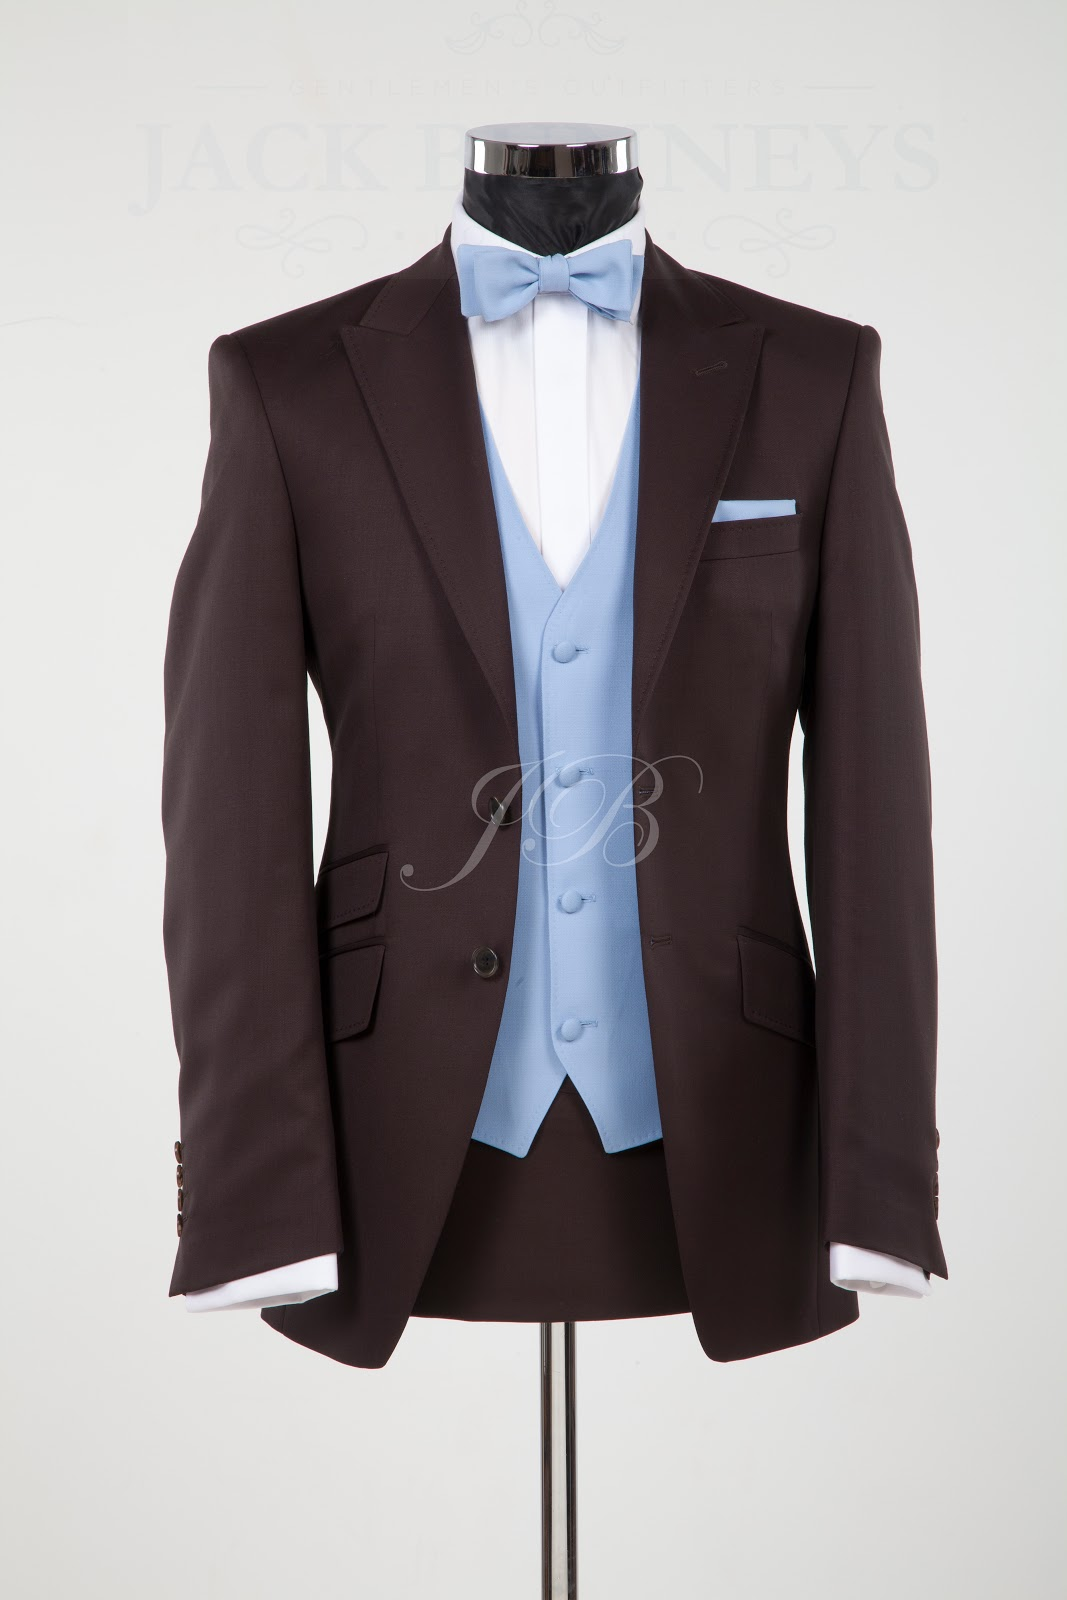 The Bunney Blog: Wedding Suits with Bow-Ties